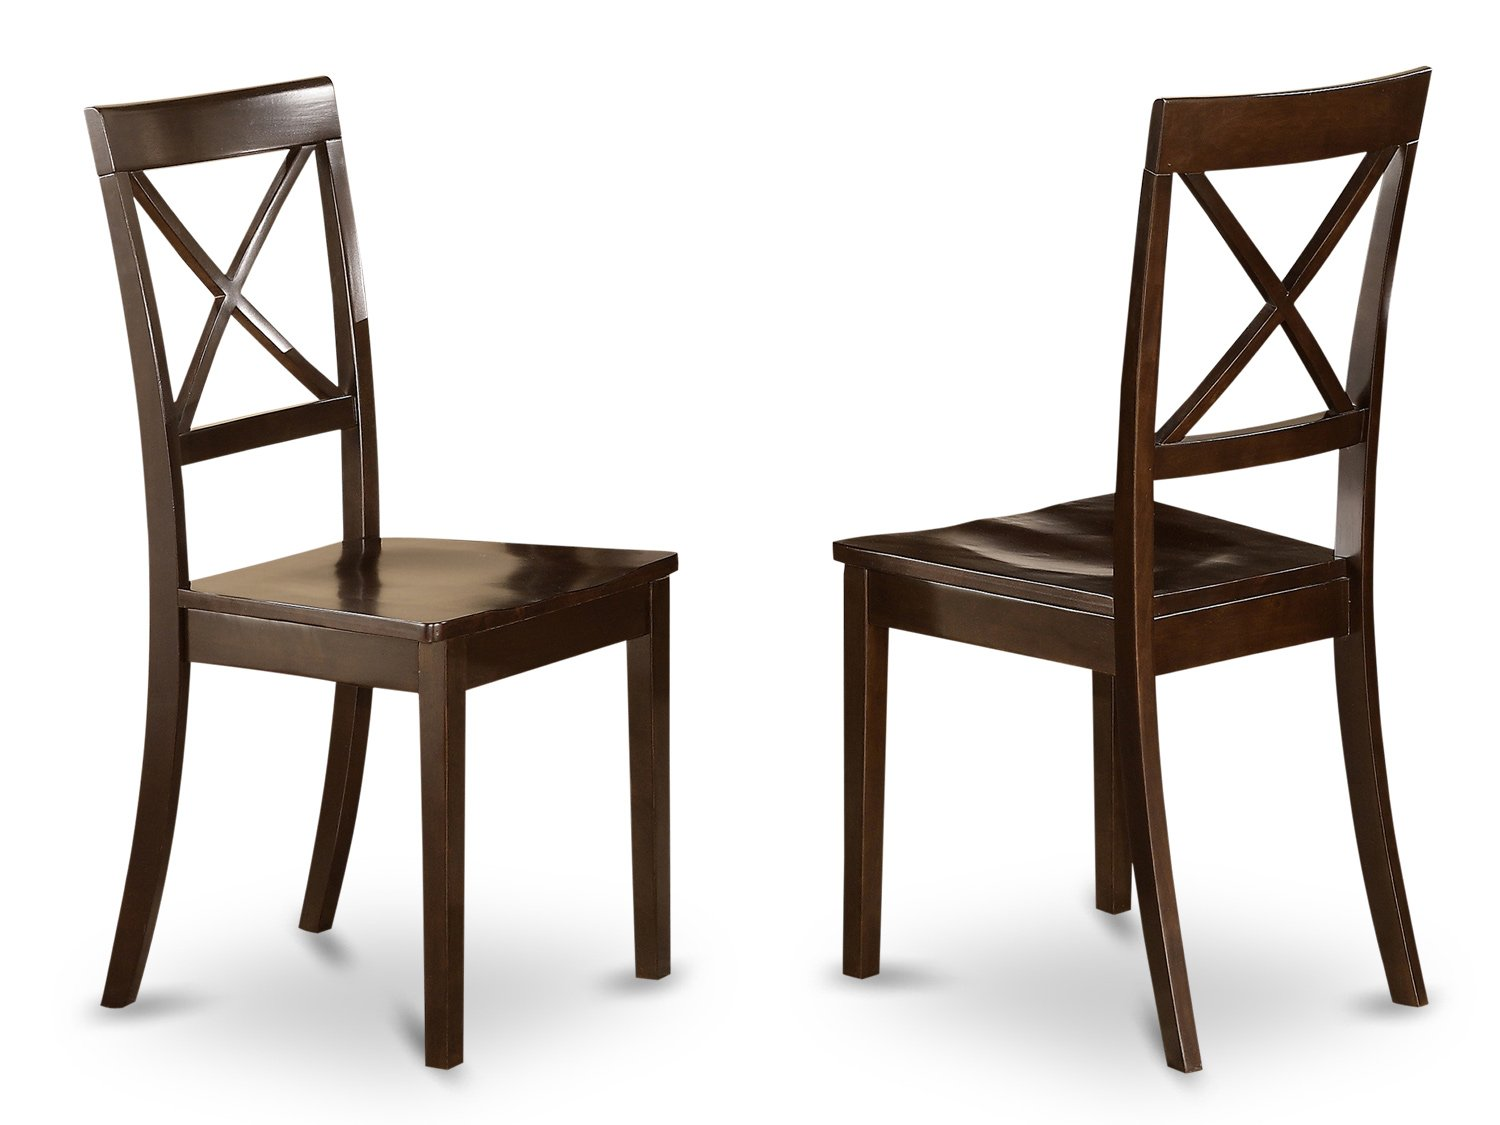 Set of 4 Boston dining room chairs in Cappuccino finish.